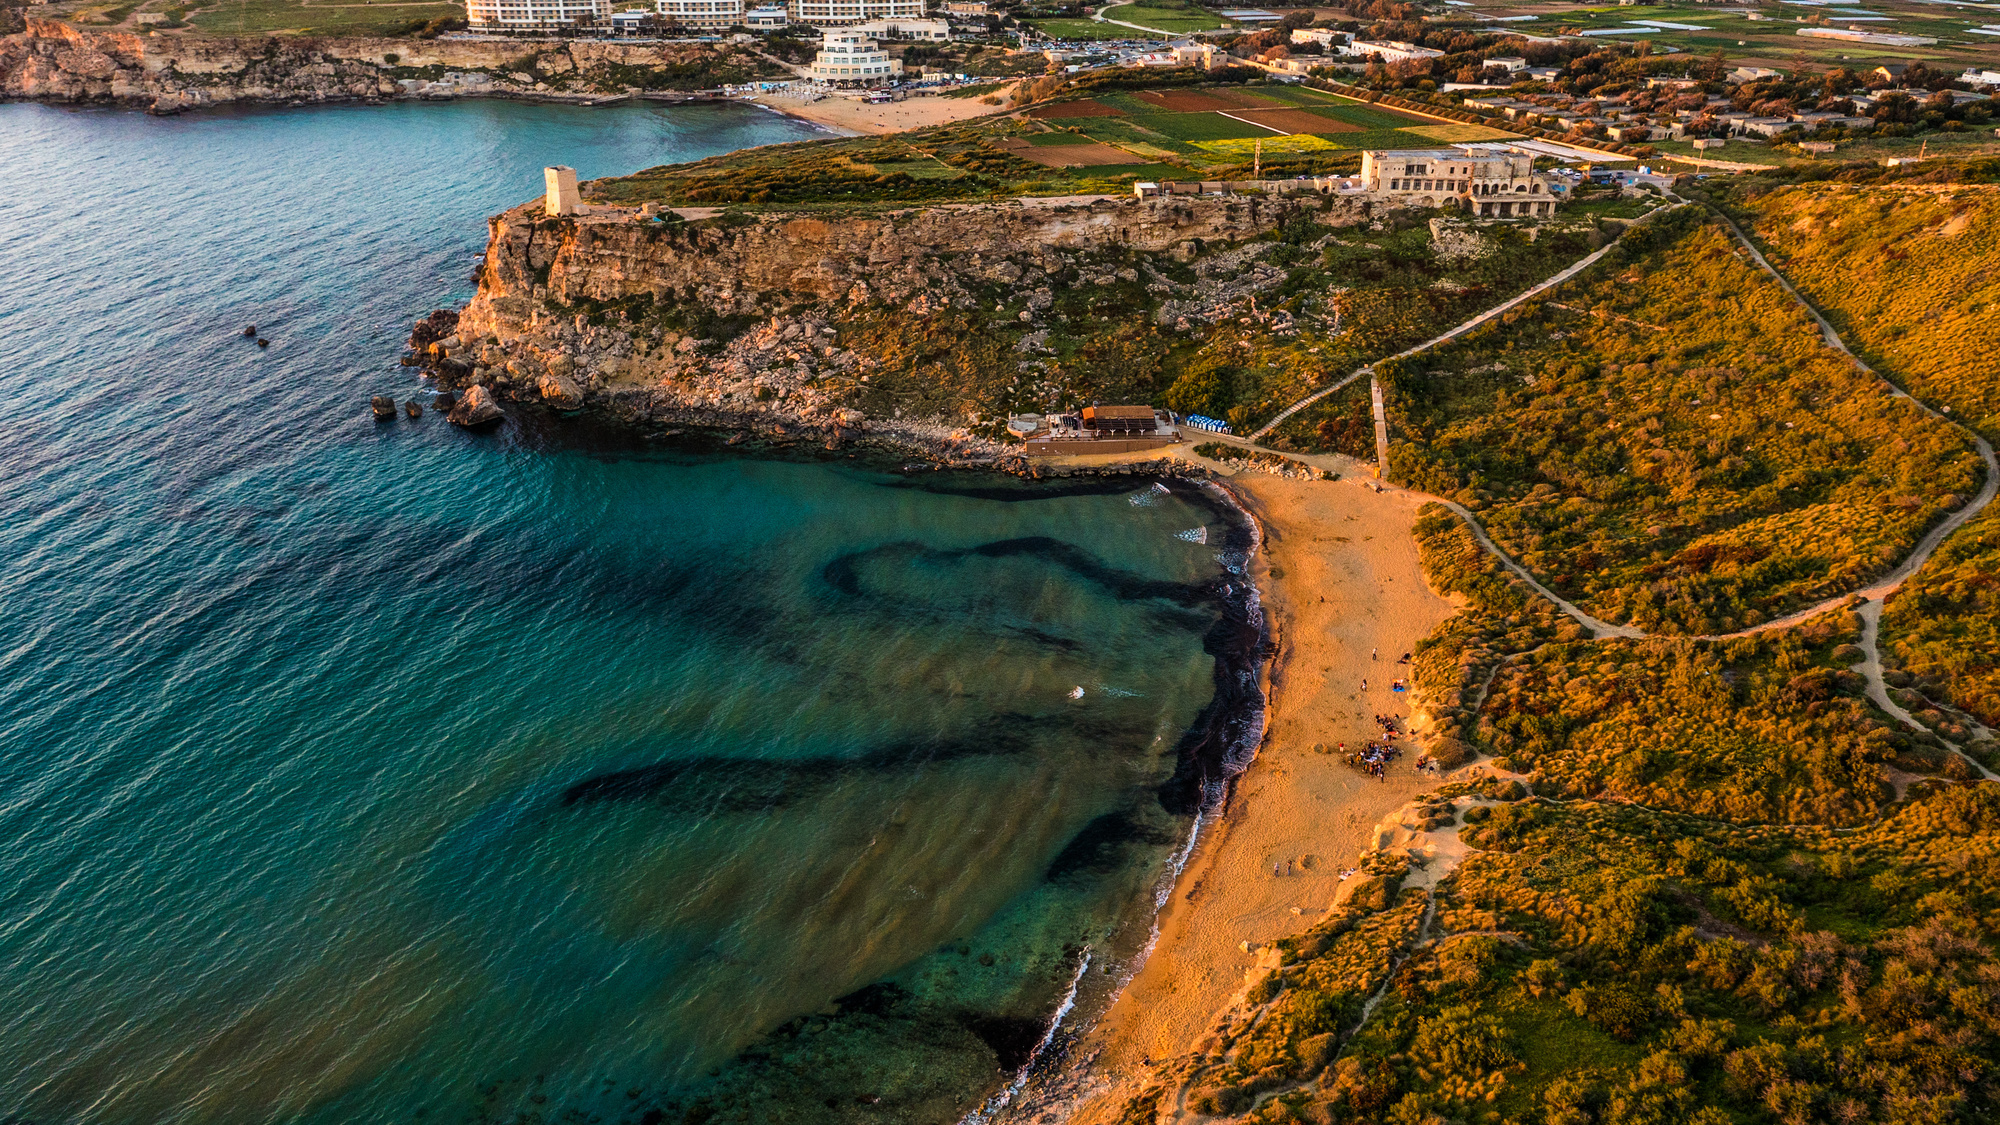 Golden Bay, Visit Malta